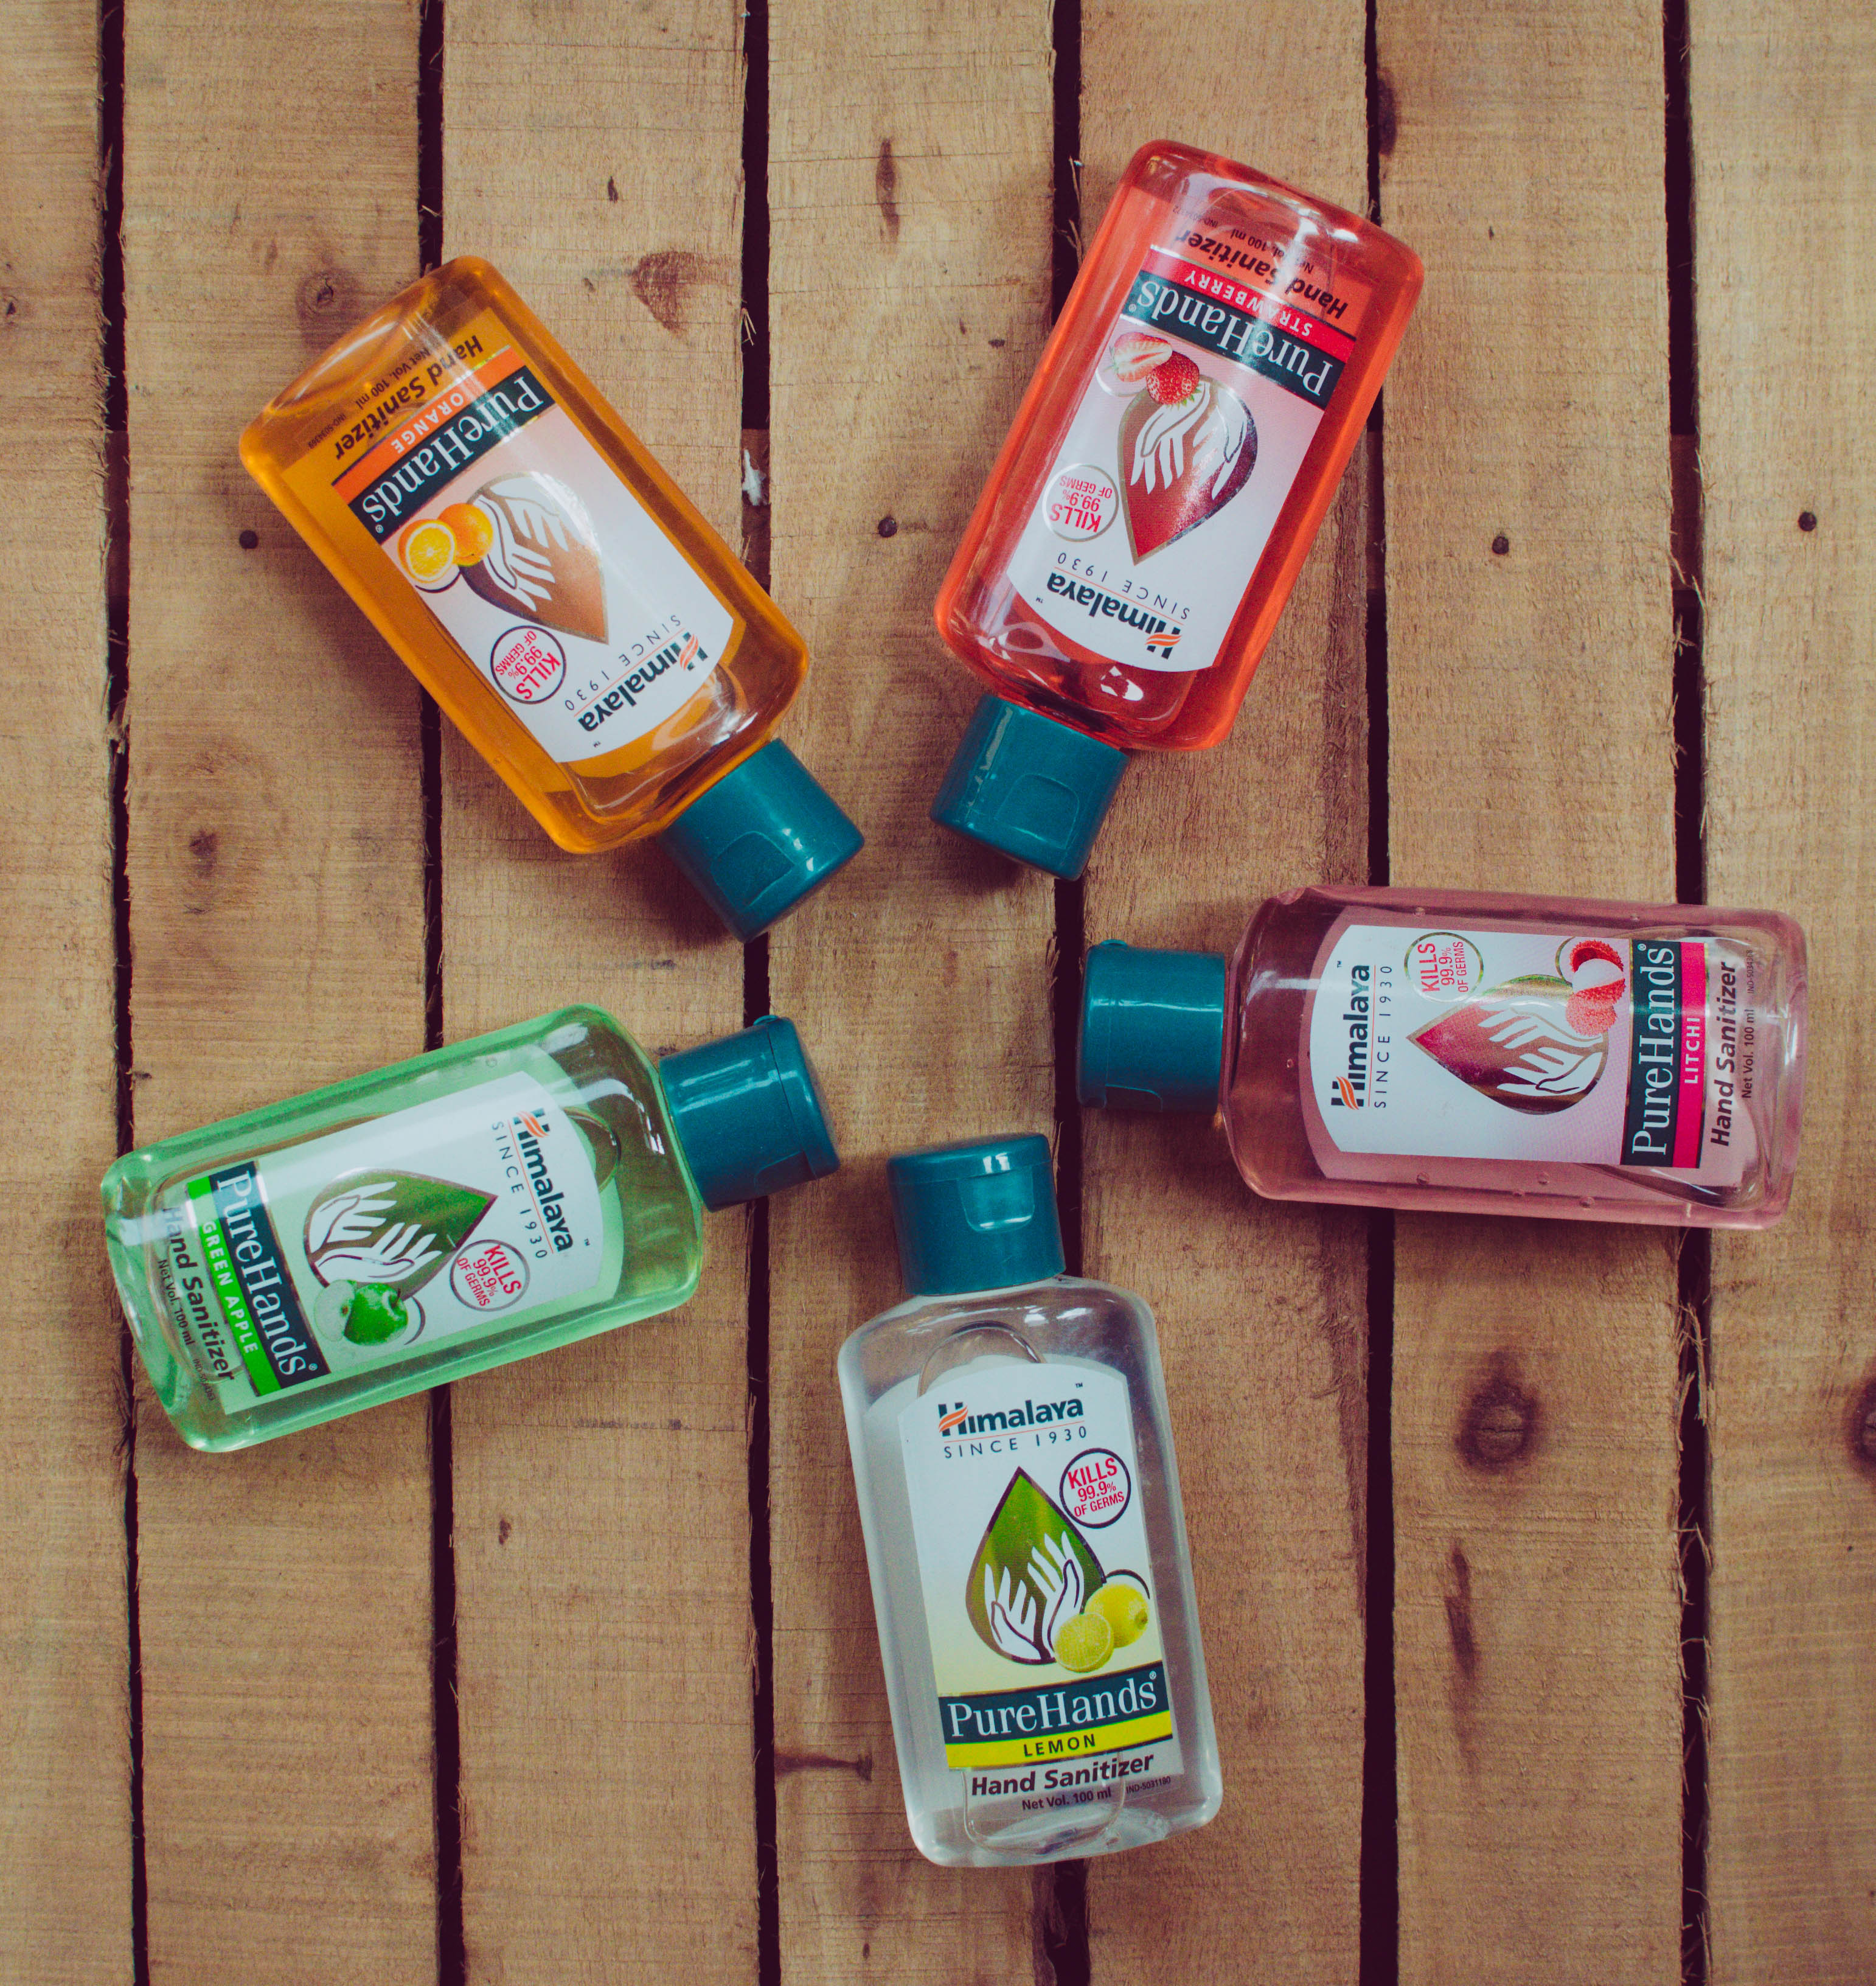 Himalaya PureHands Hand Sanitizers Review | Cherry On Top